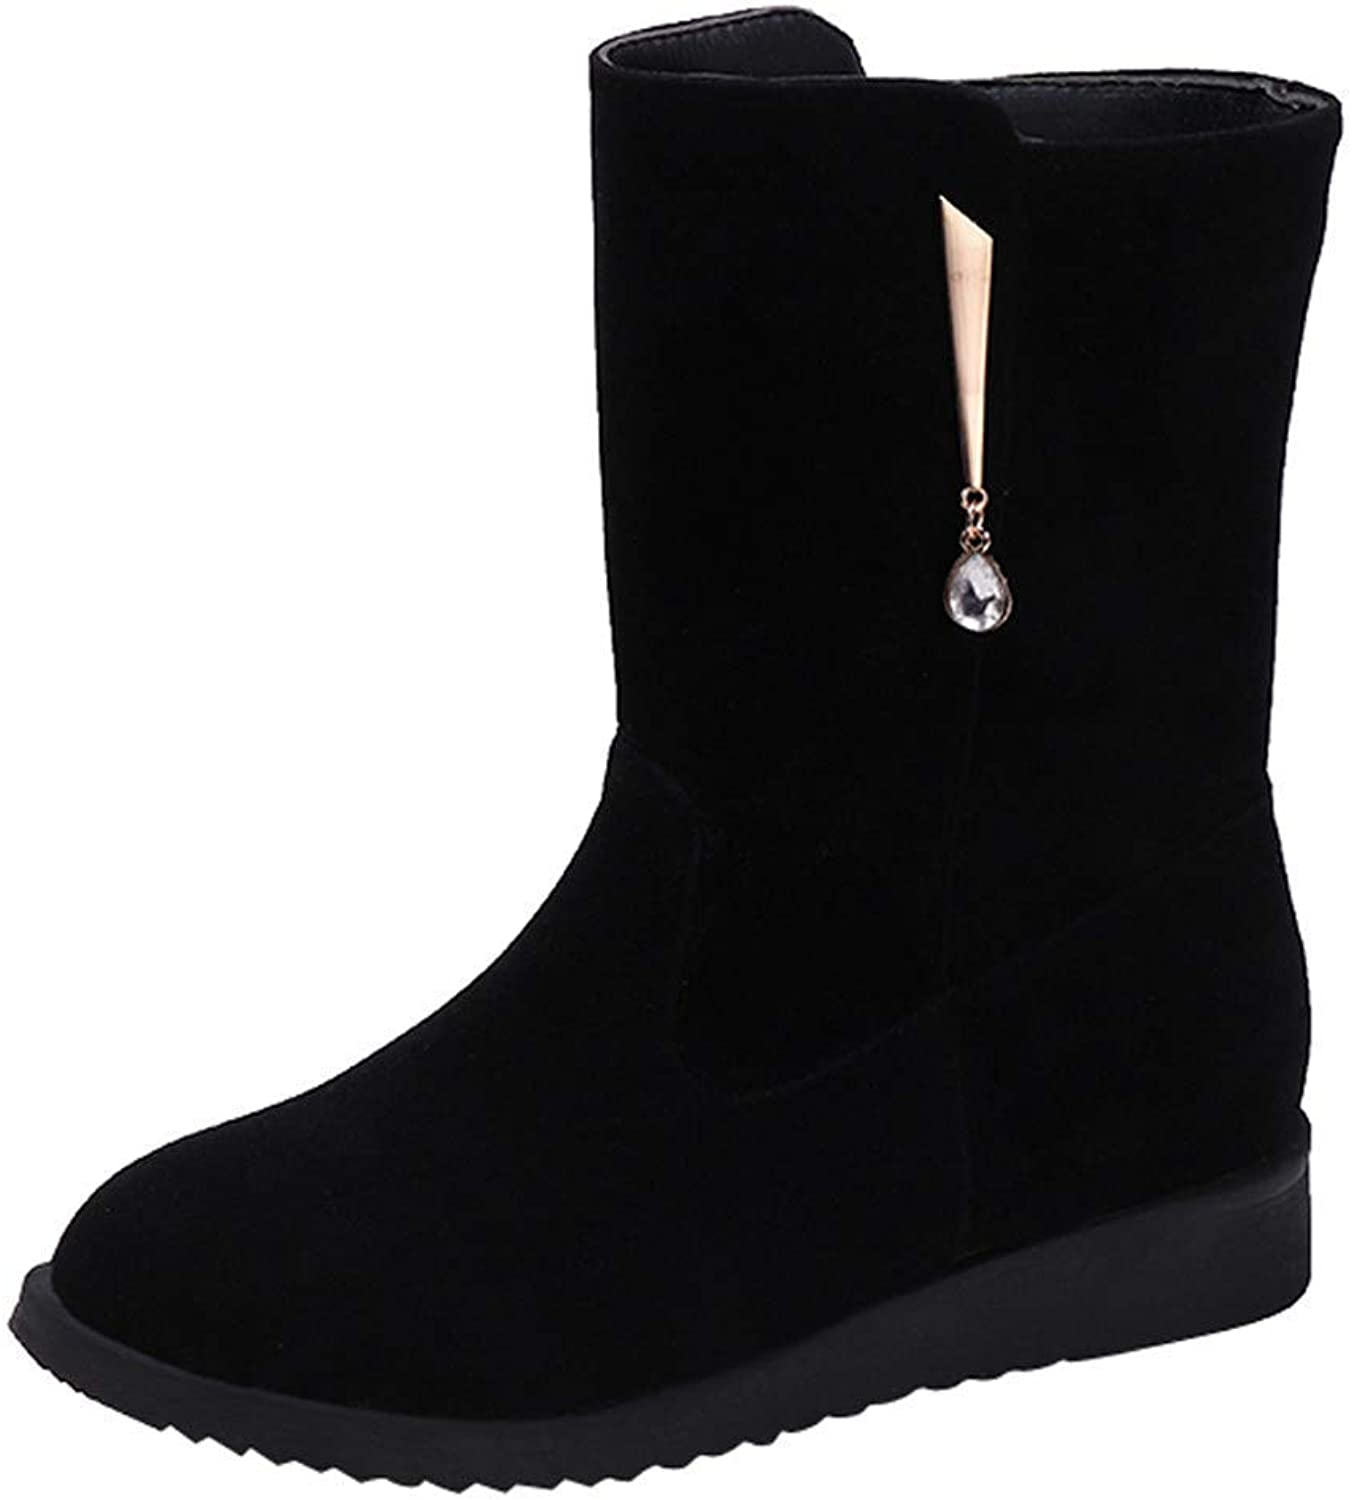 A-LING Women Middle Tube Suede Martin Boots shoes Zipper Boot